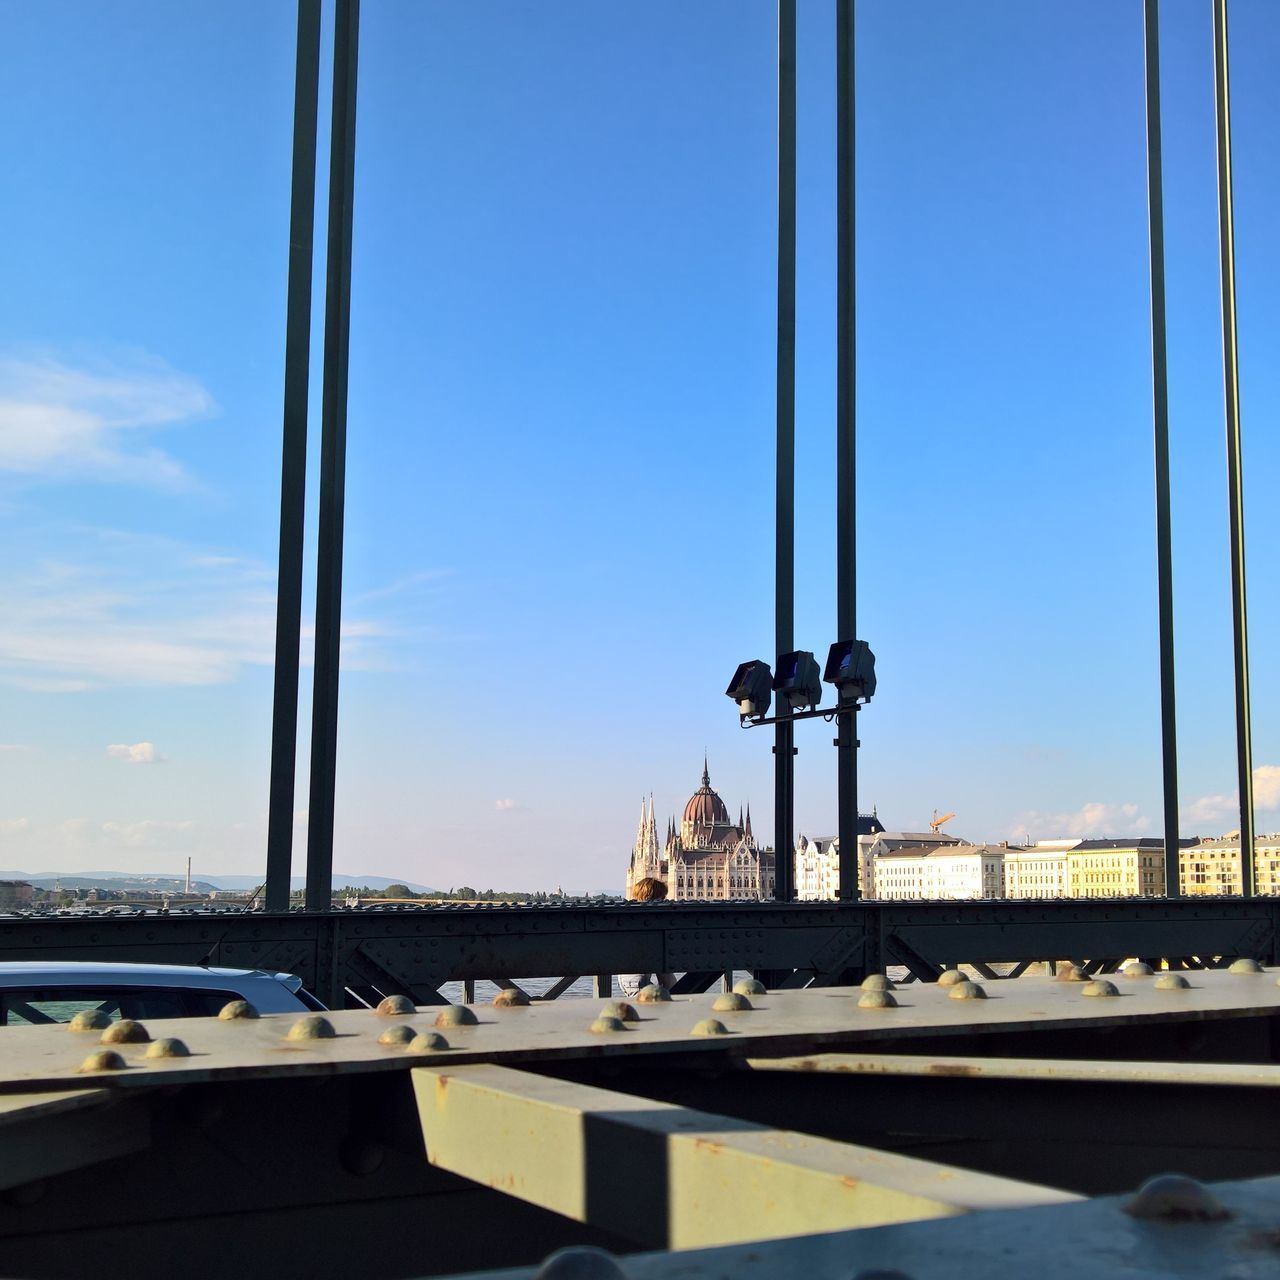 Architecture Blue Building Exterior Built Structure Car City Cityscape Clear Sky Close-up Danube Day Duna Mode Of Transport Nature No People Orszaghaz Outdoors Parlament Parliament Sky Sunlight Transportation Window